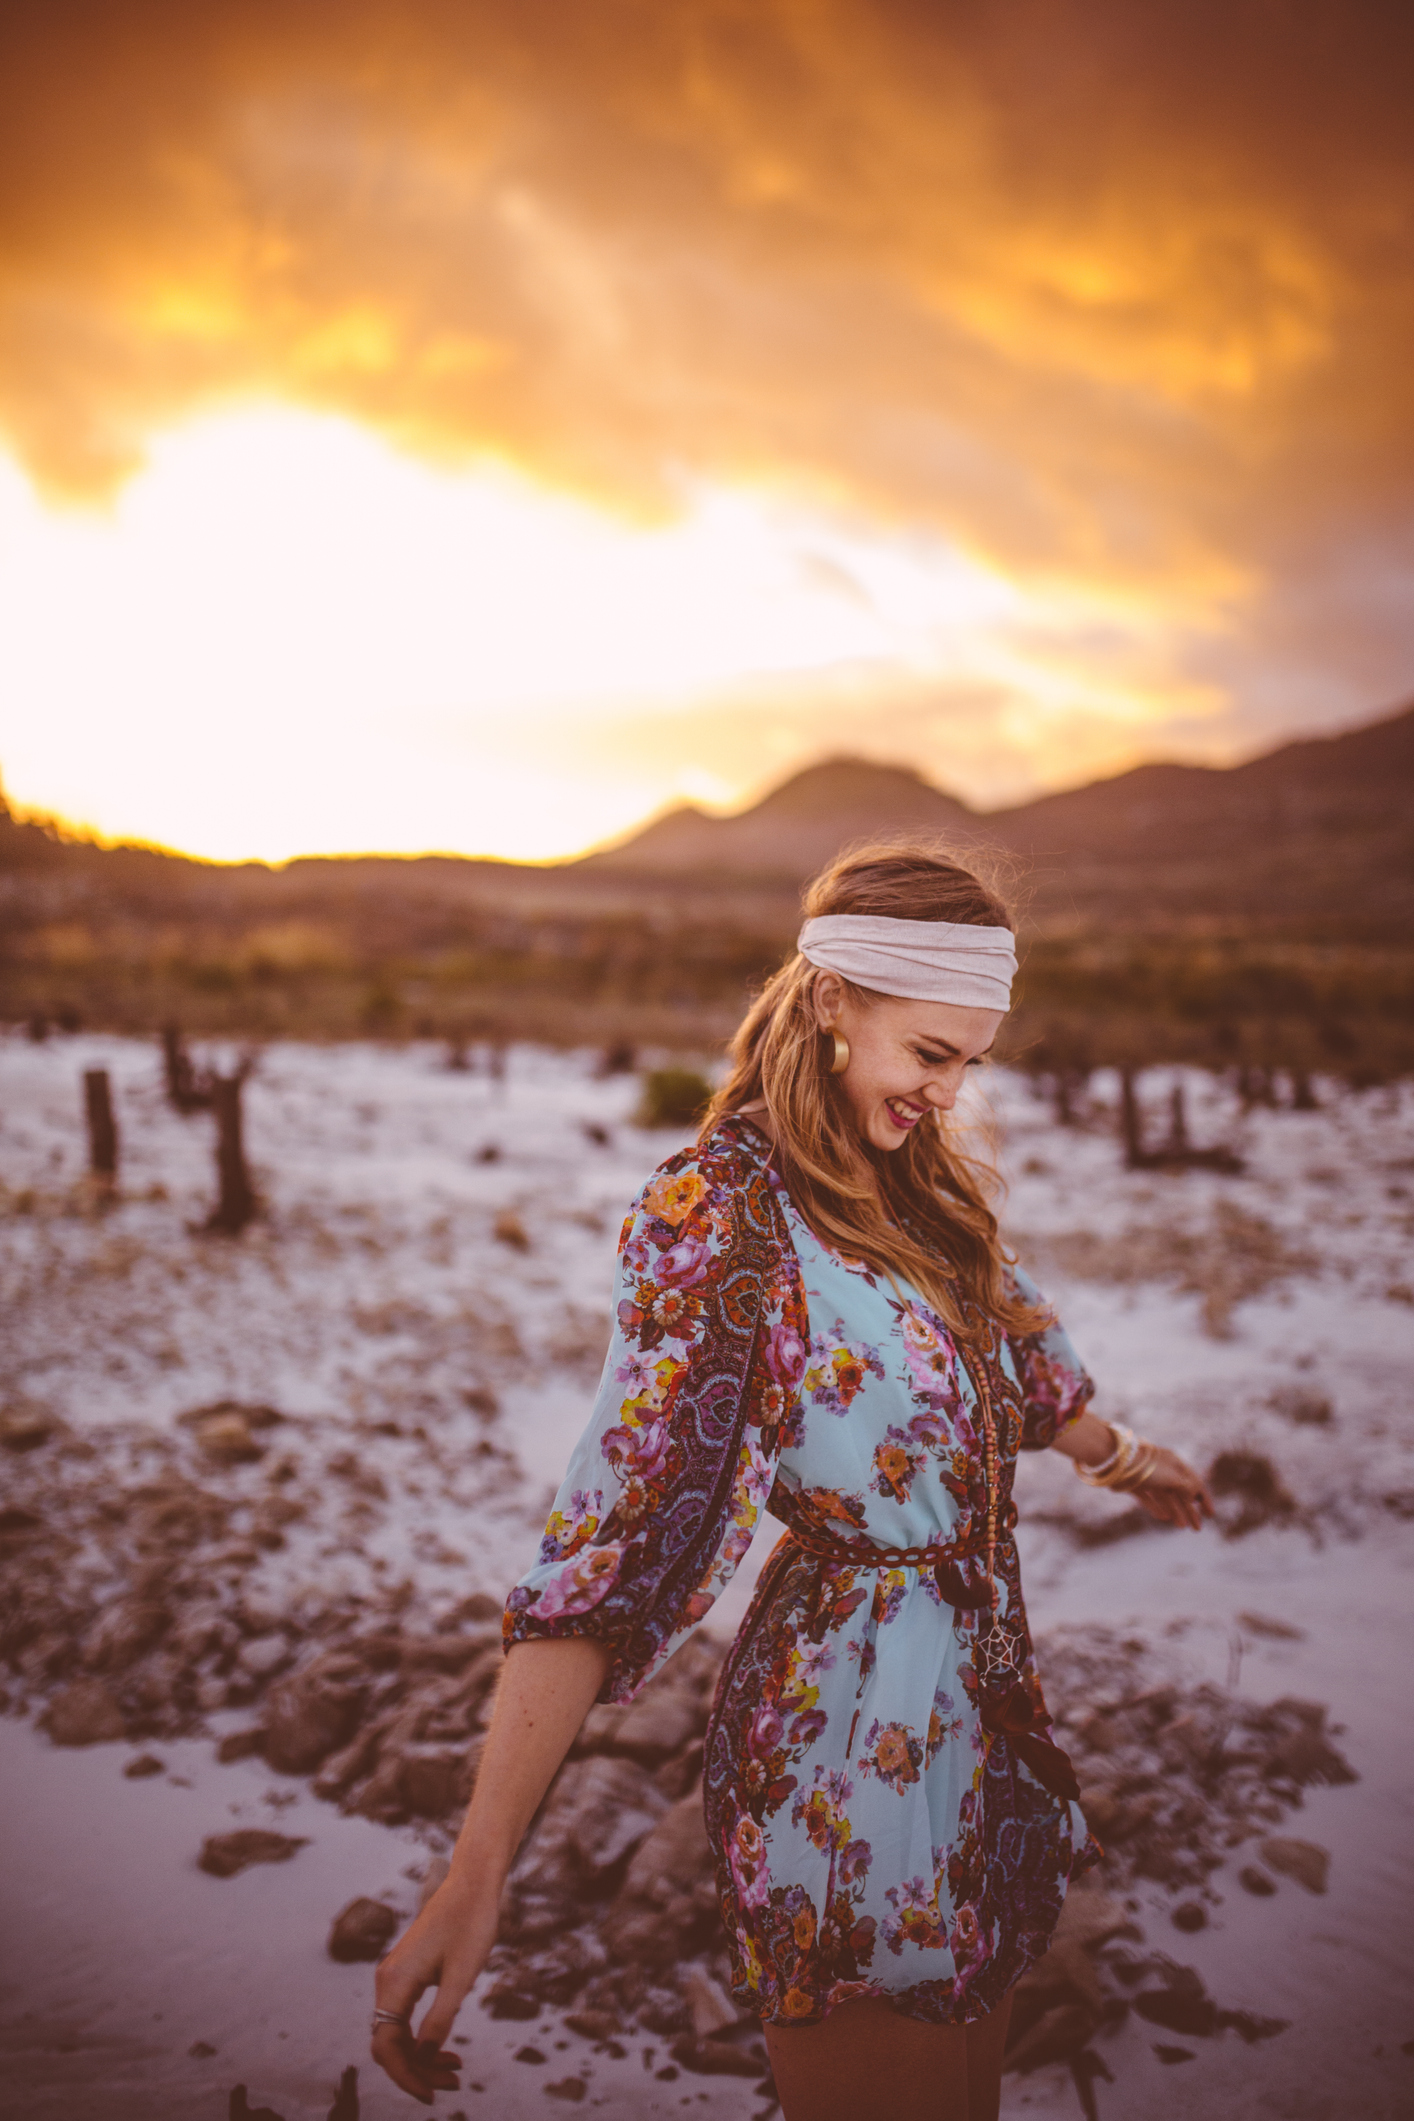 Candid shot of a boho girl walking happily in nature on a peaceful summer evening